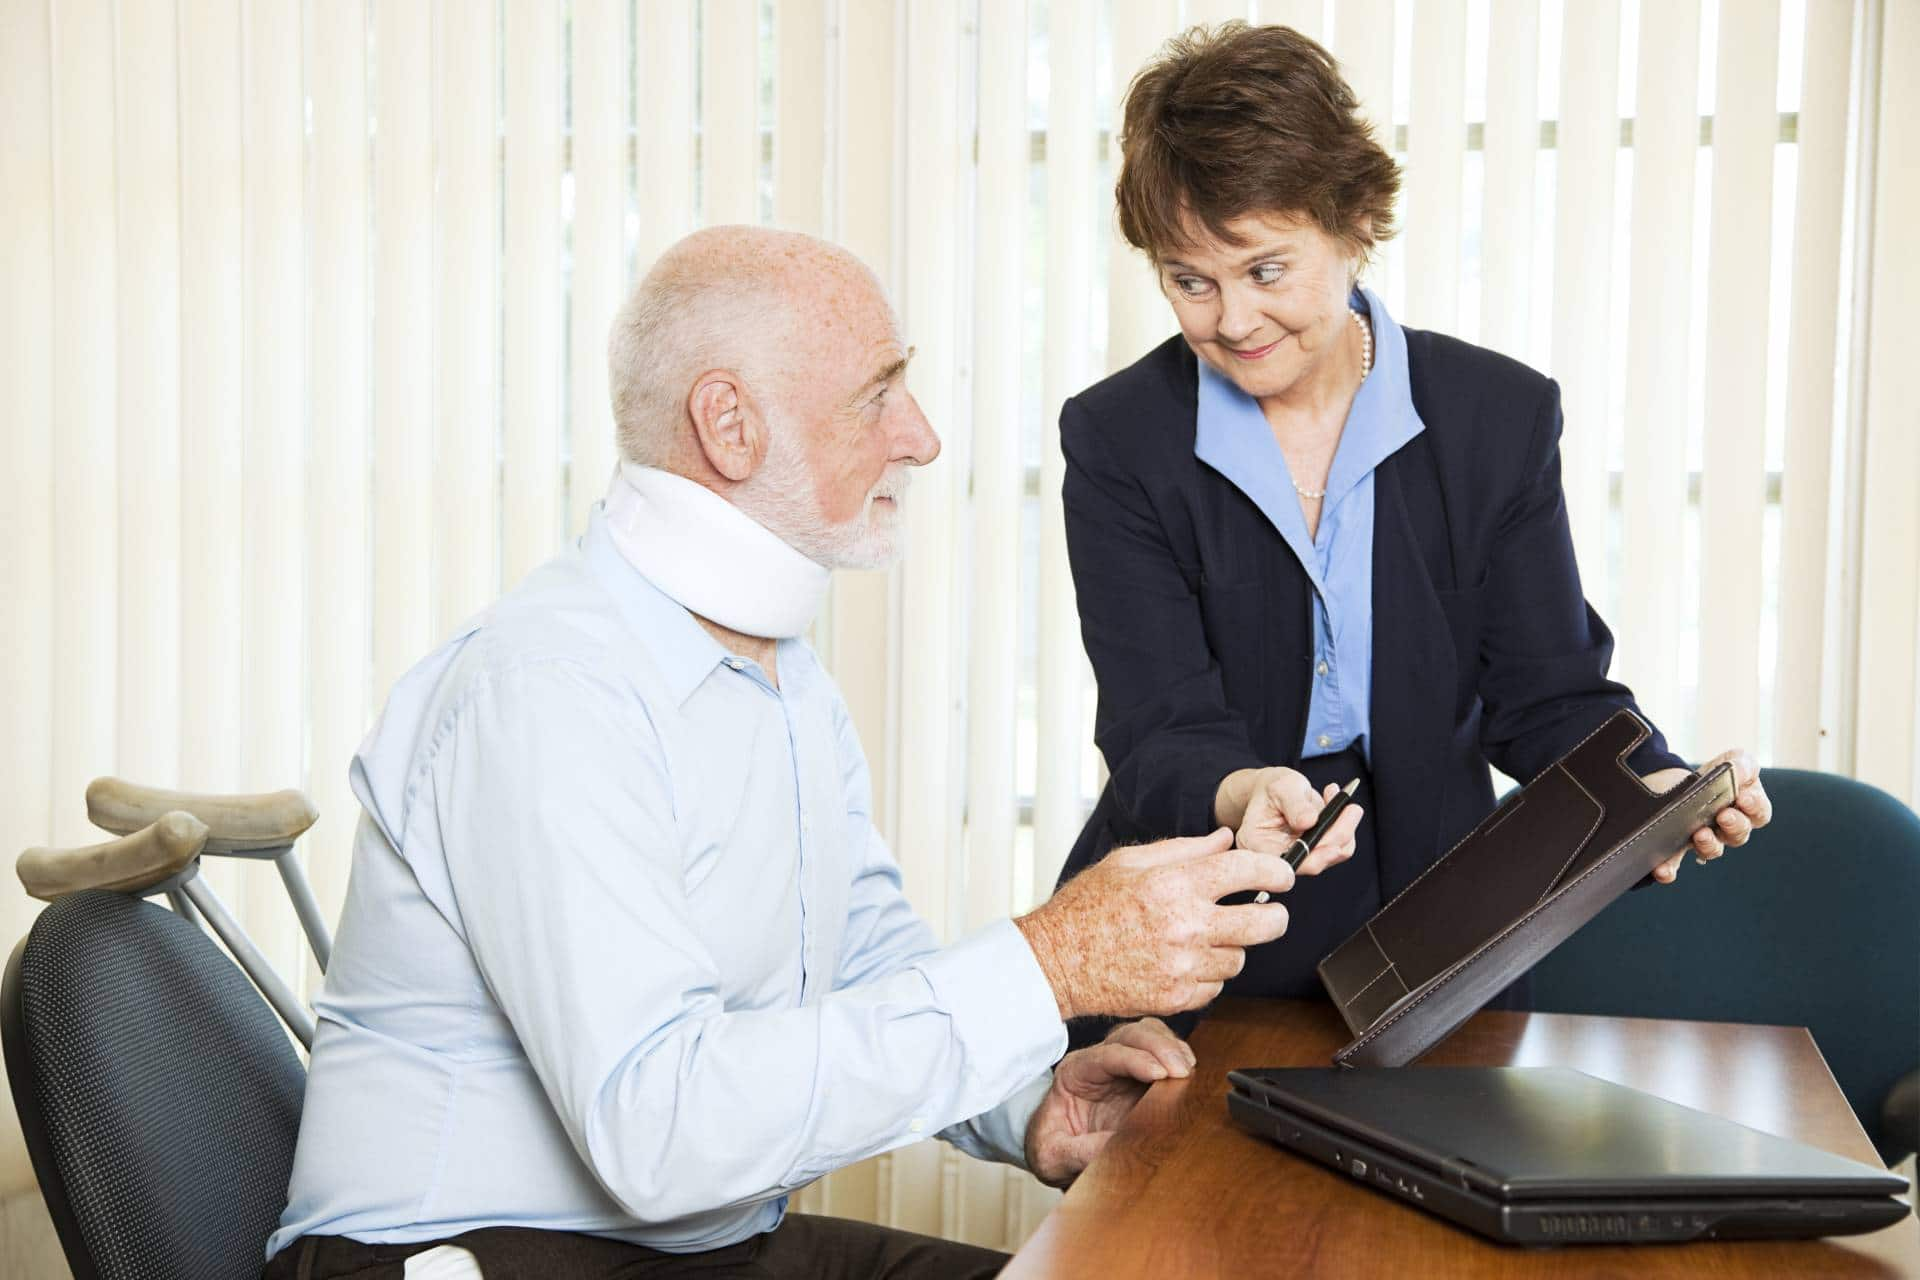 Schedule a free consultation with our personal injury lawyers at the Angell Firm in Garden Hills.